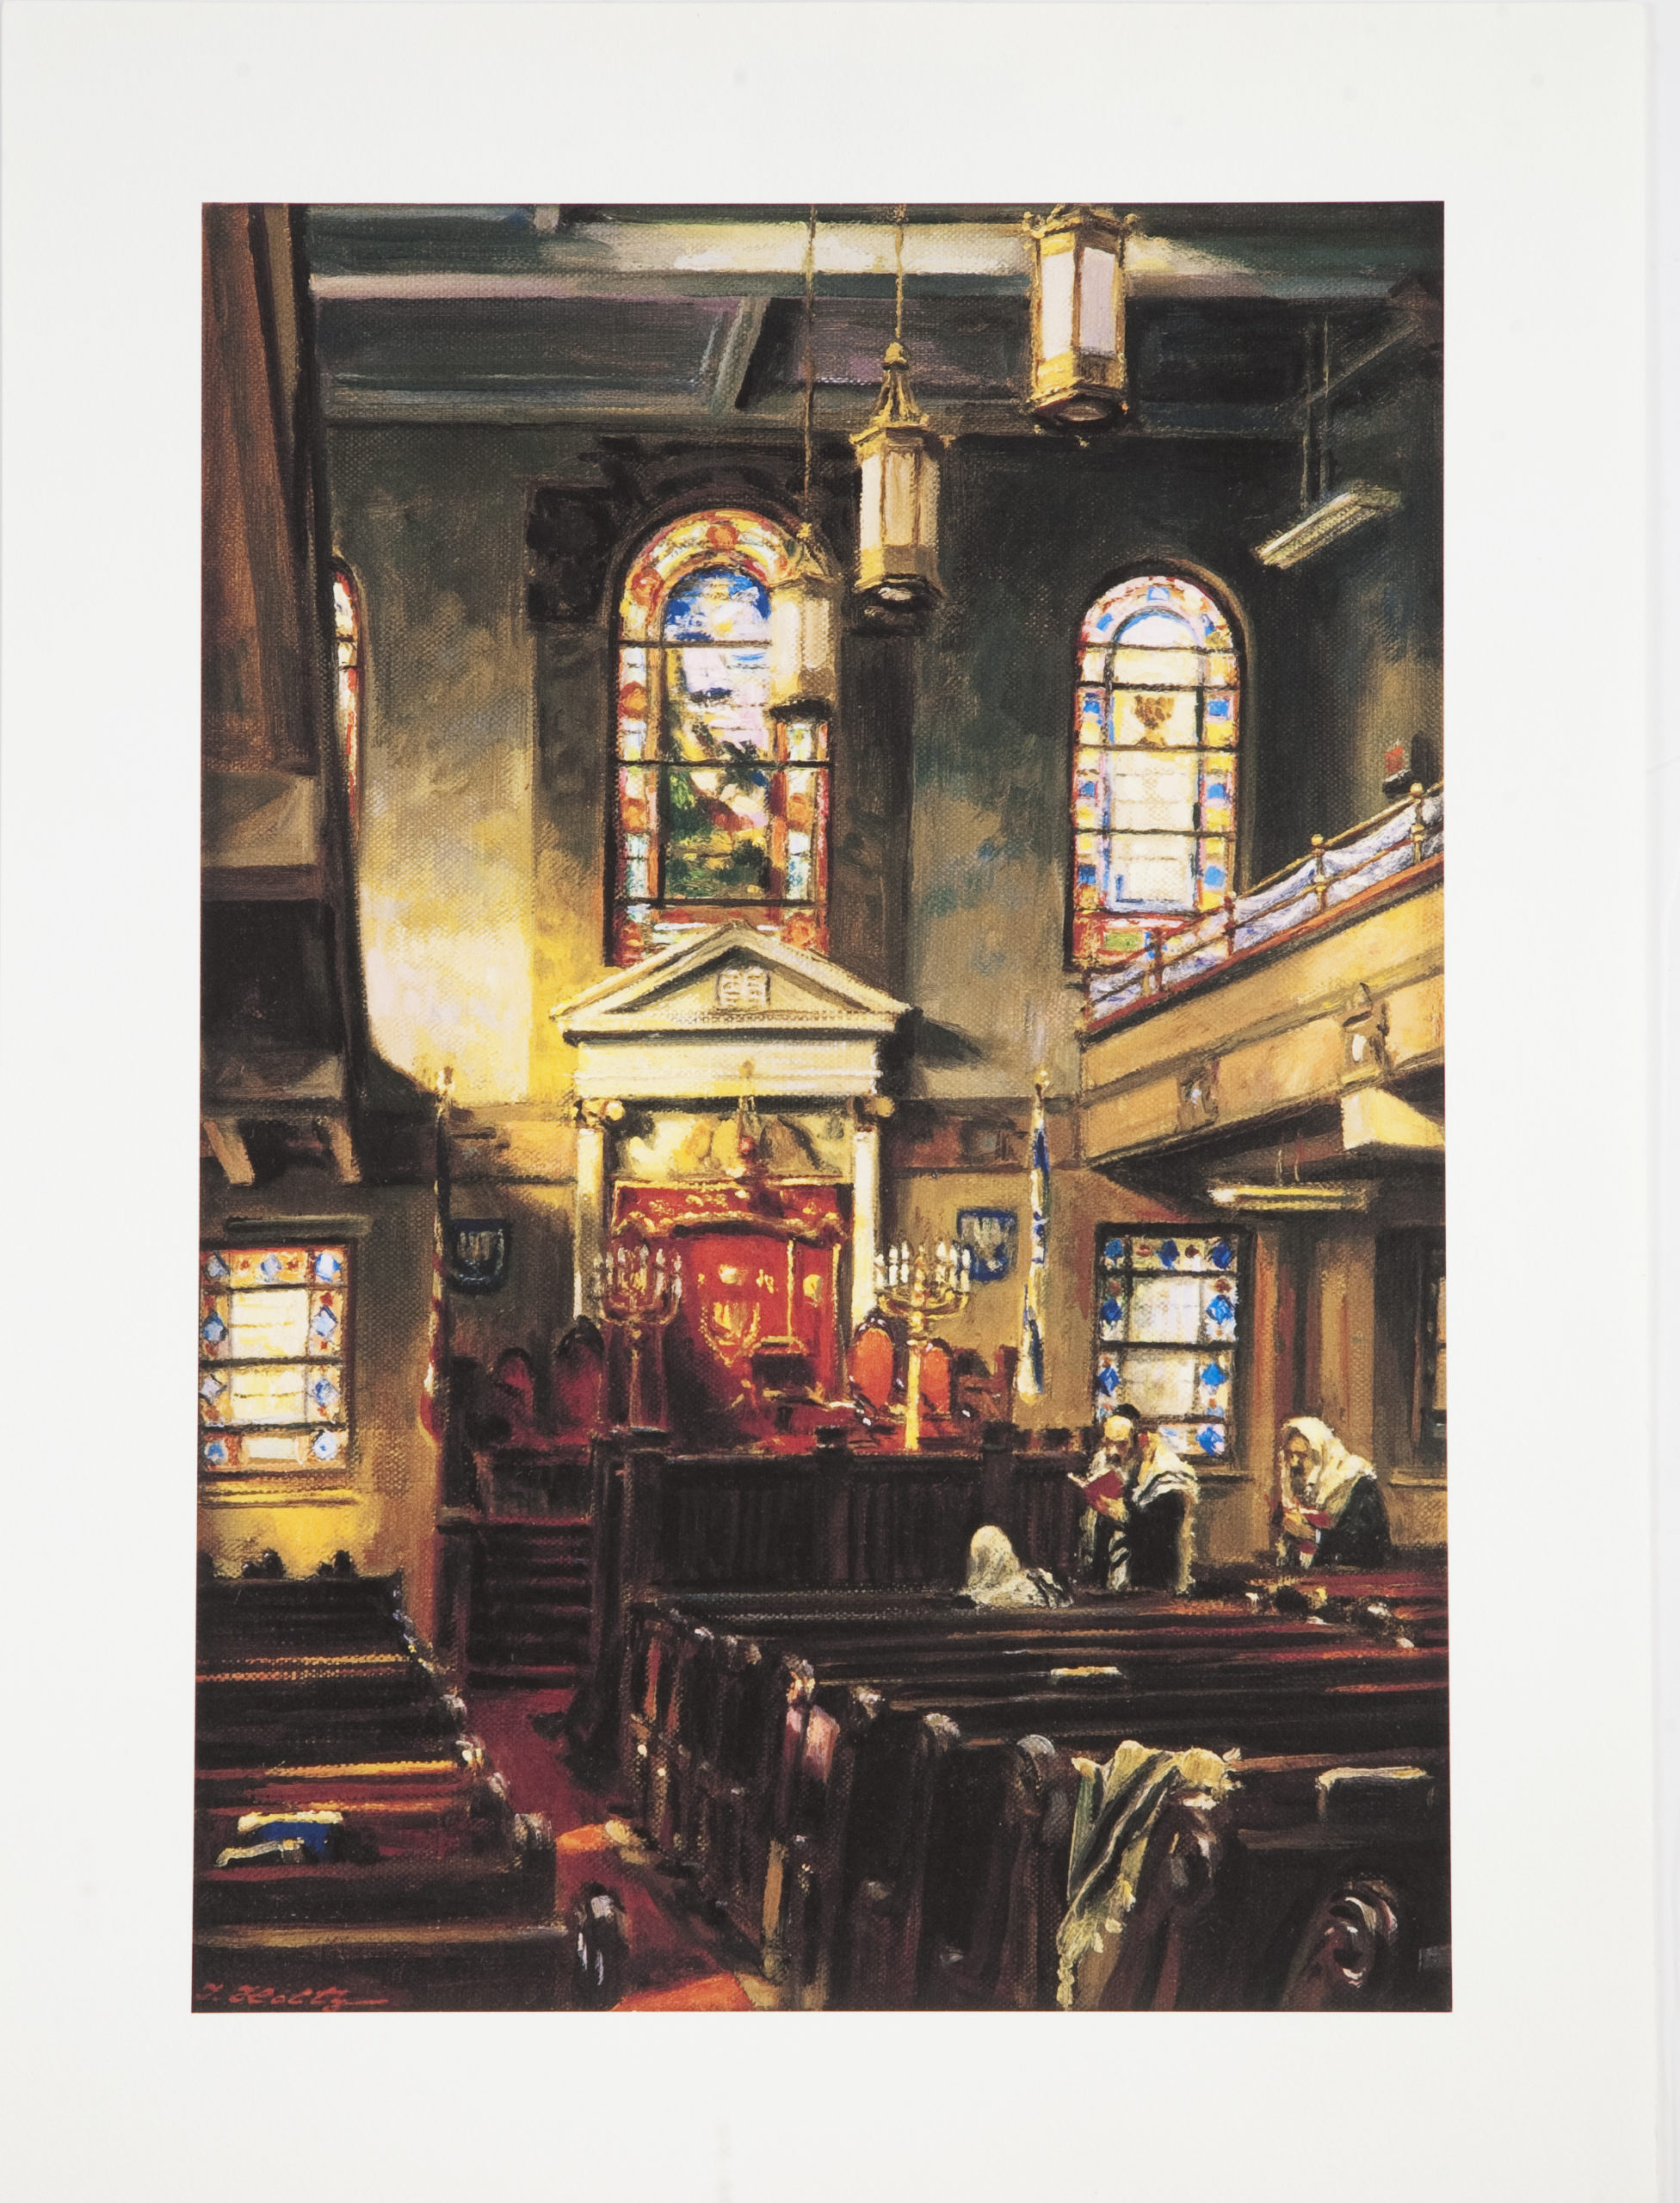 L13 Washington Heights Synagogue 1970 - Color - Lithograph - 22 x 16.25 - No Frame- $500